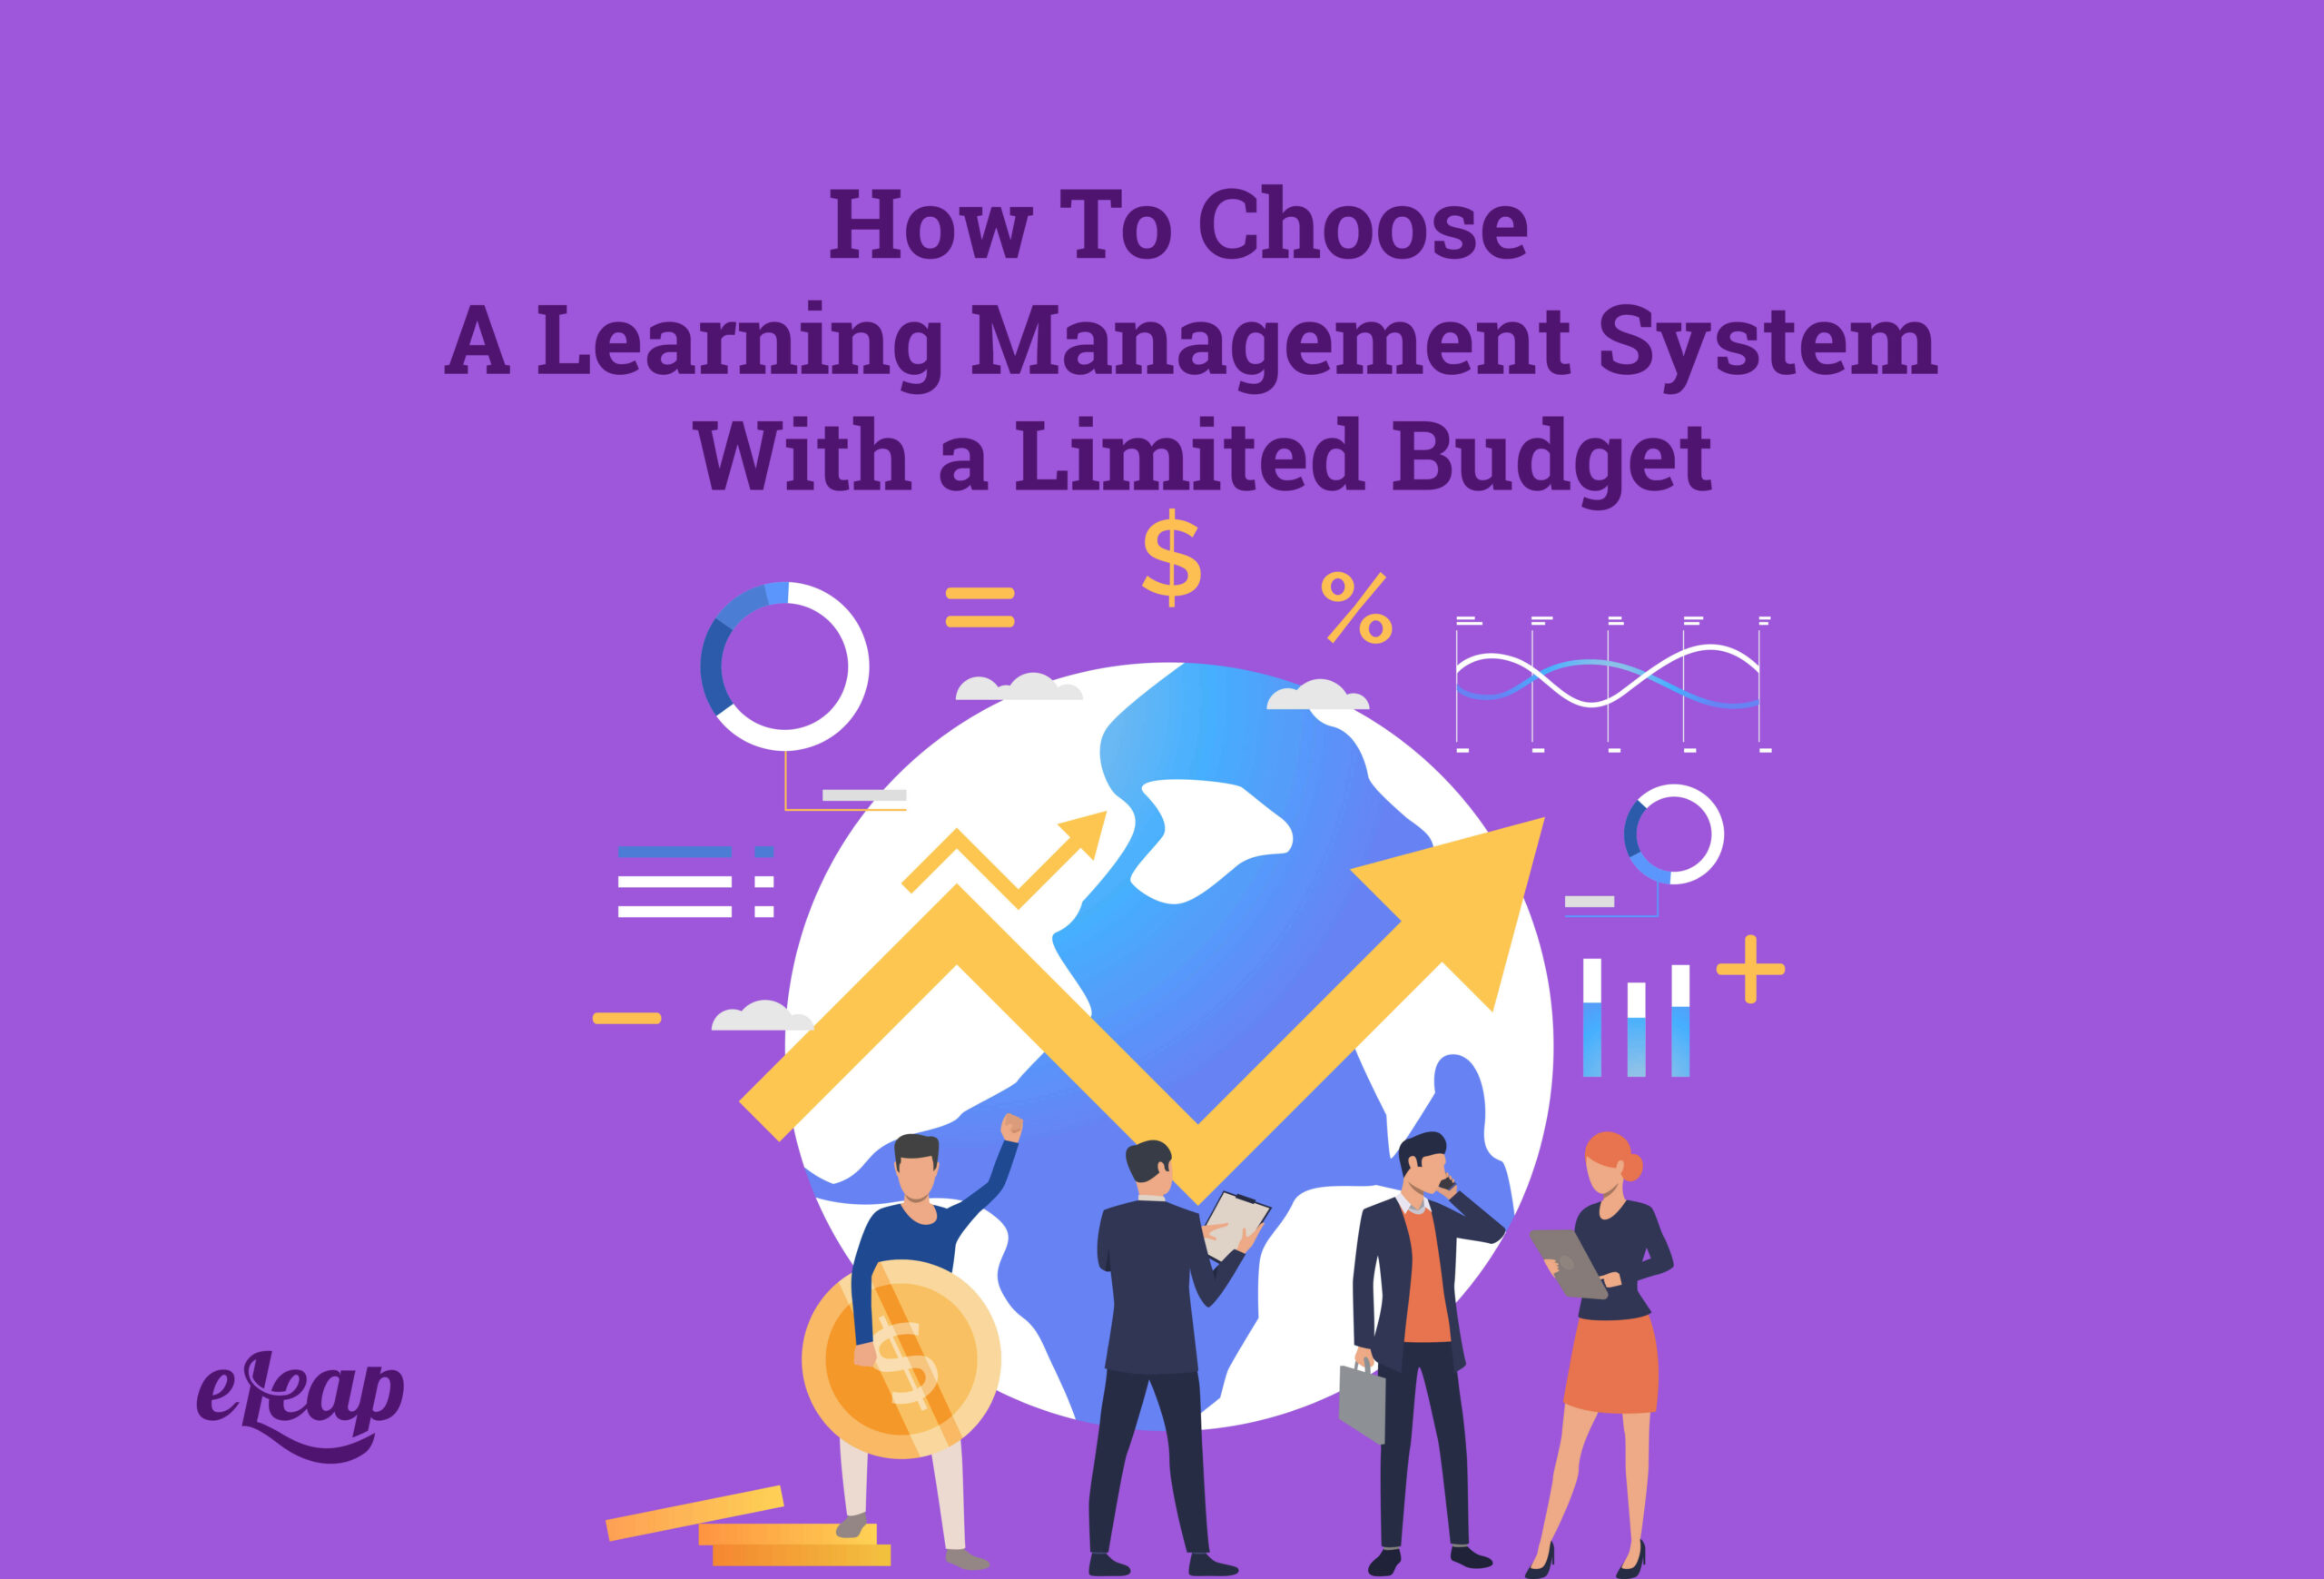 How To Choose A Learning Management System With a Limited Budget